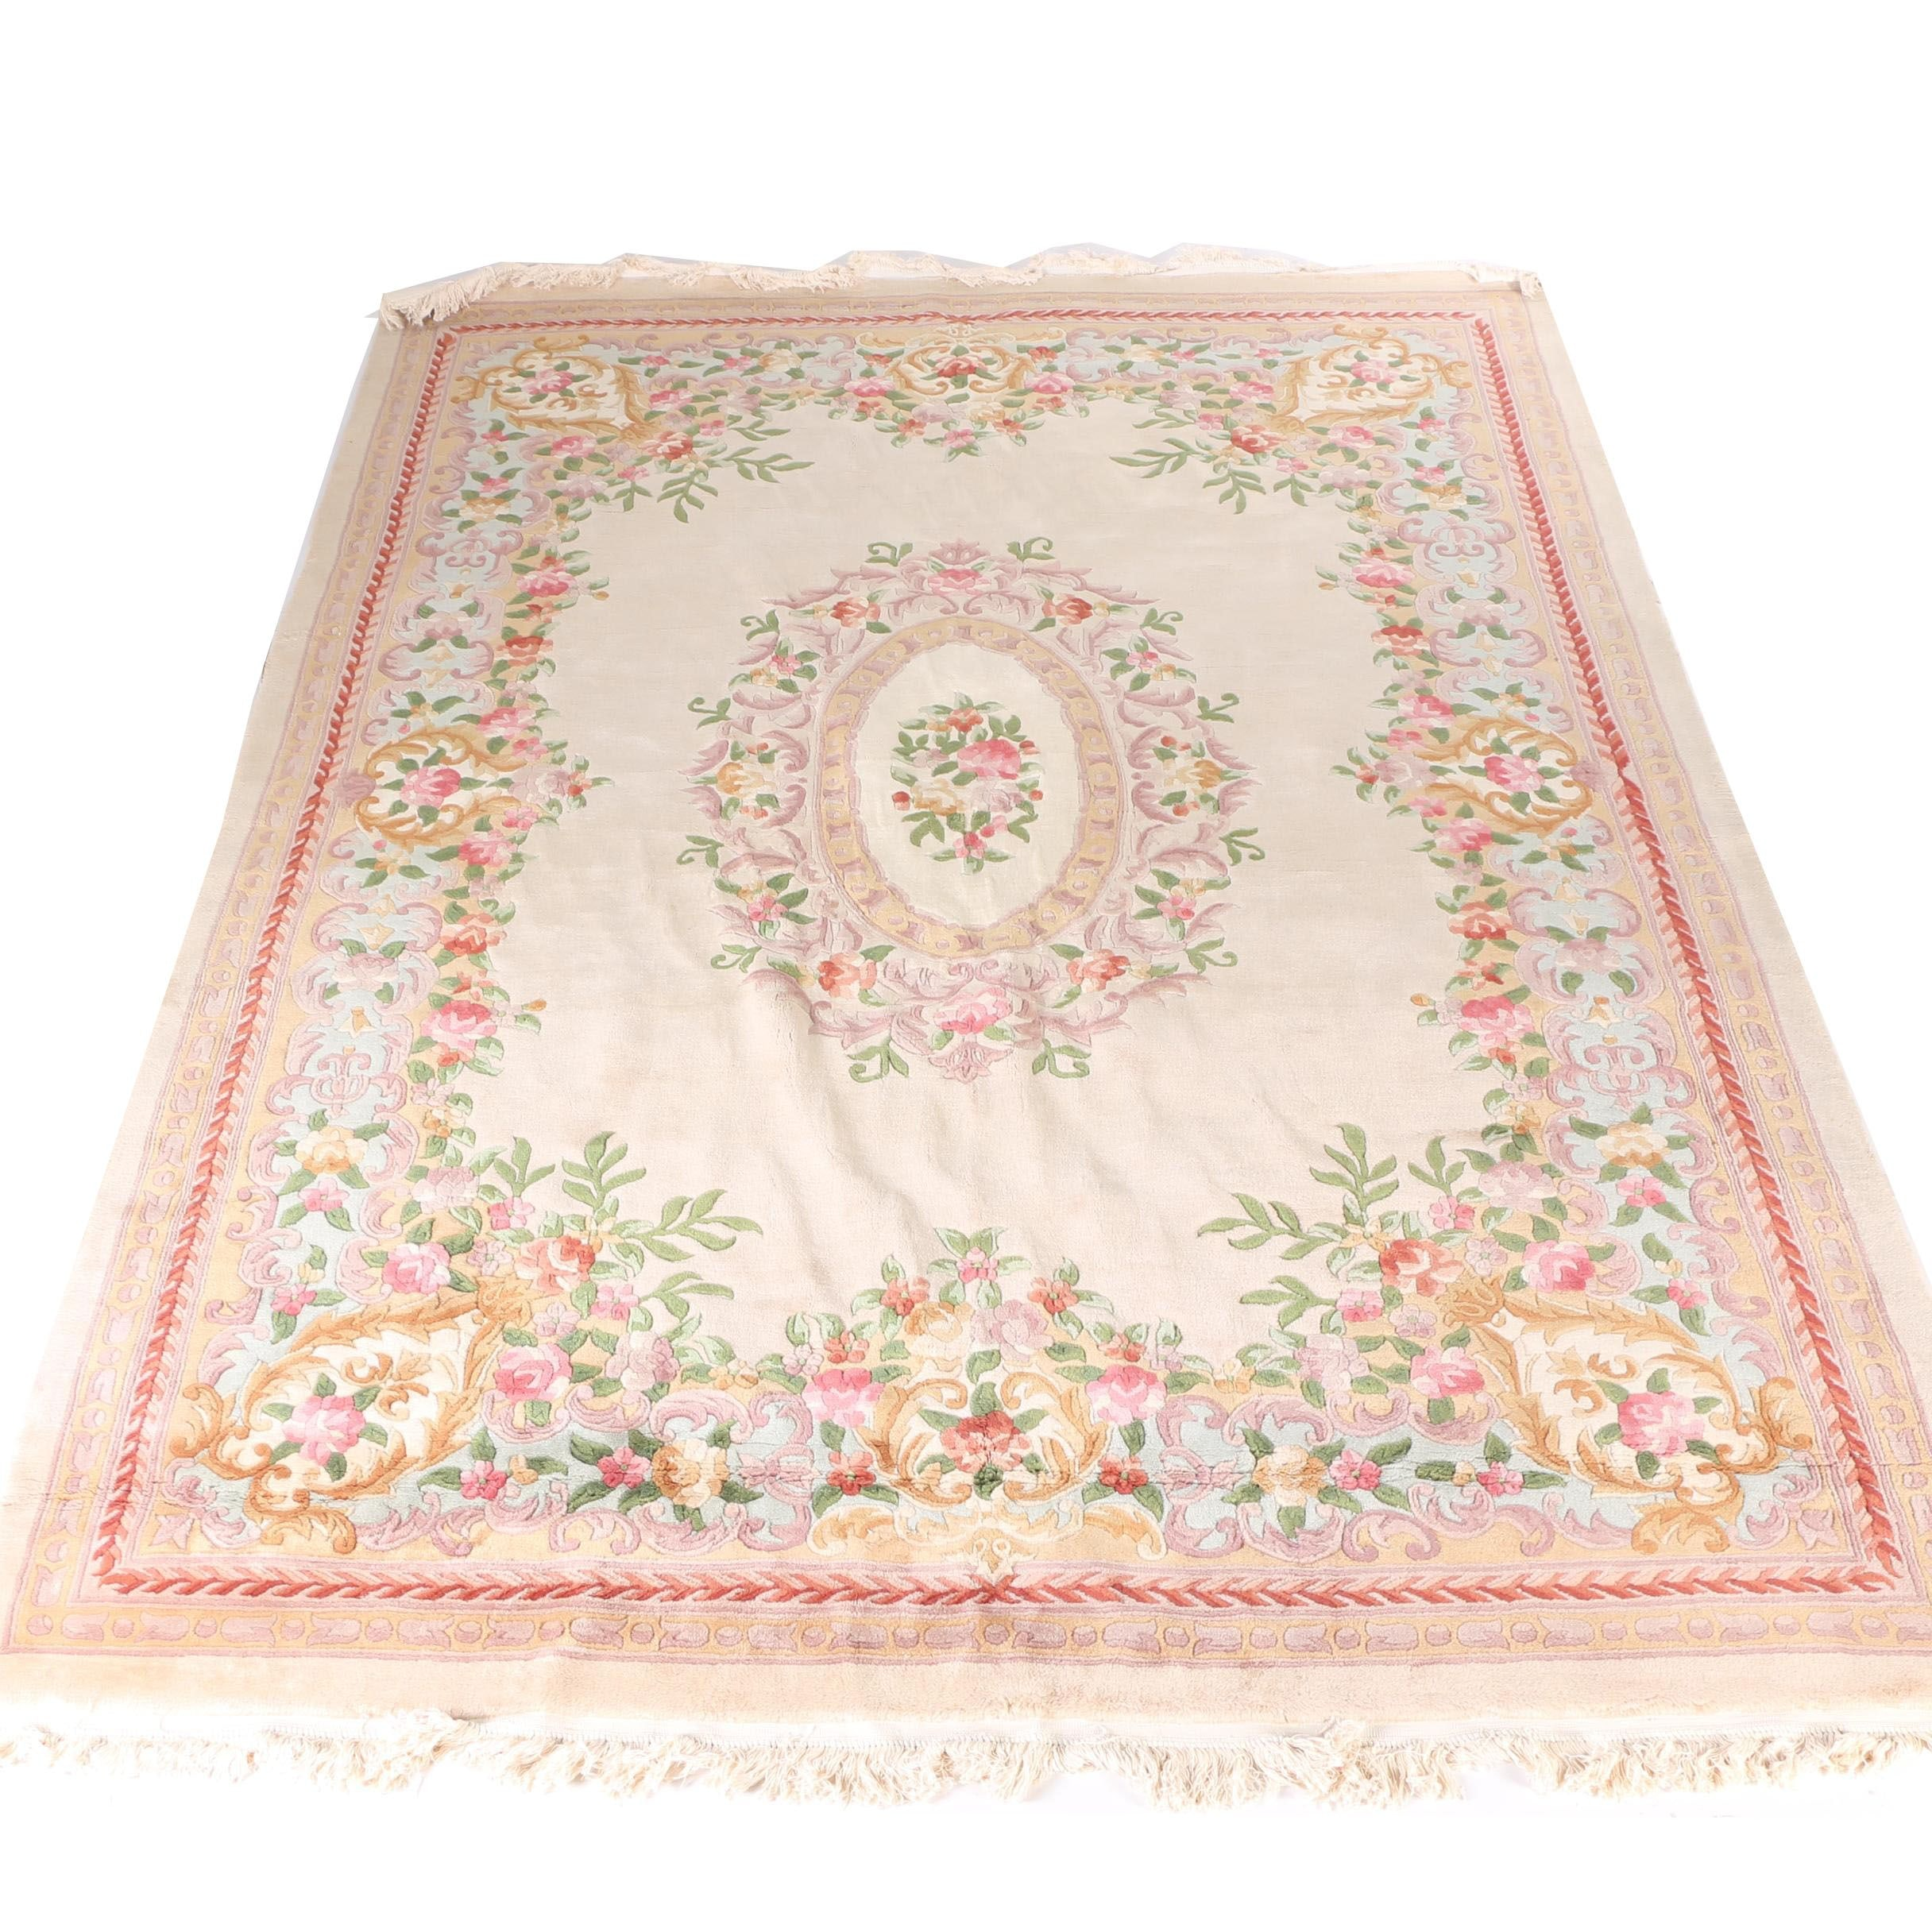 Handmade Aubusson Style Carved Wool Area Rug